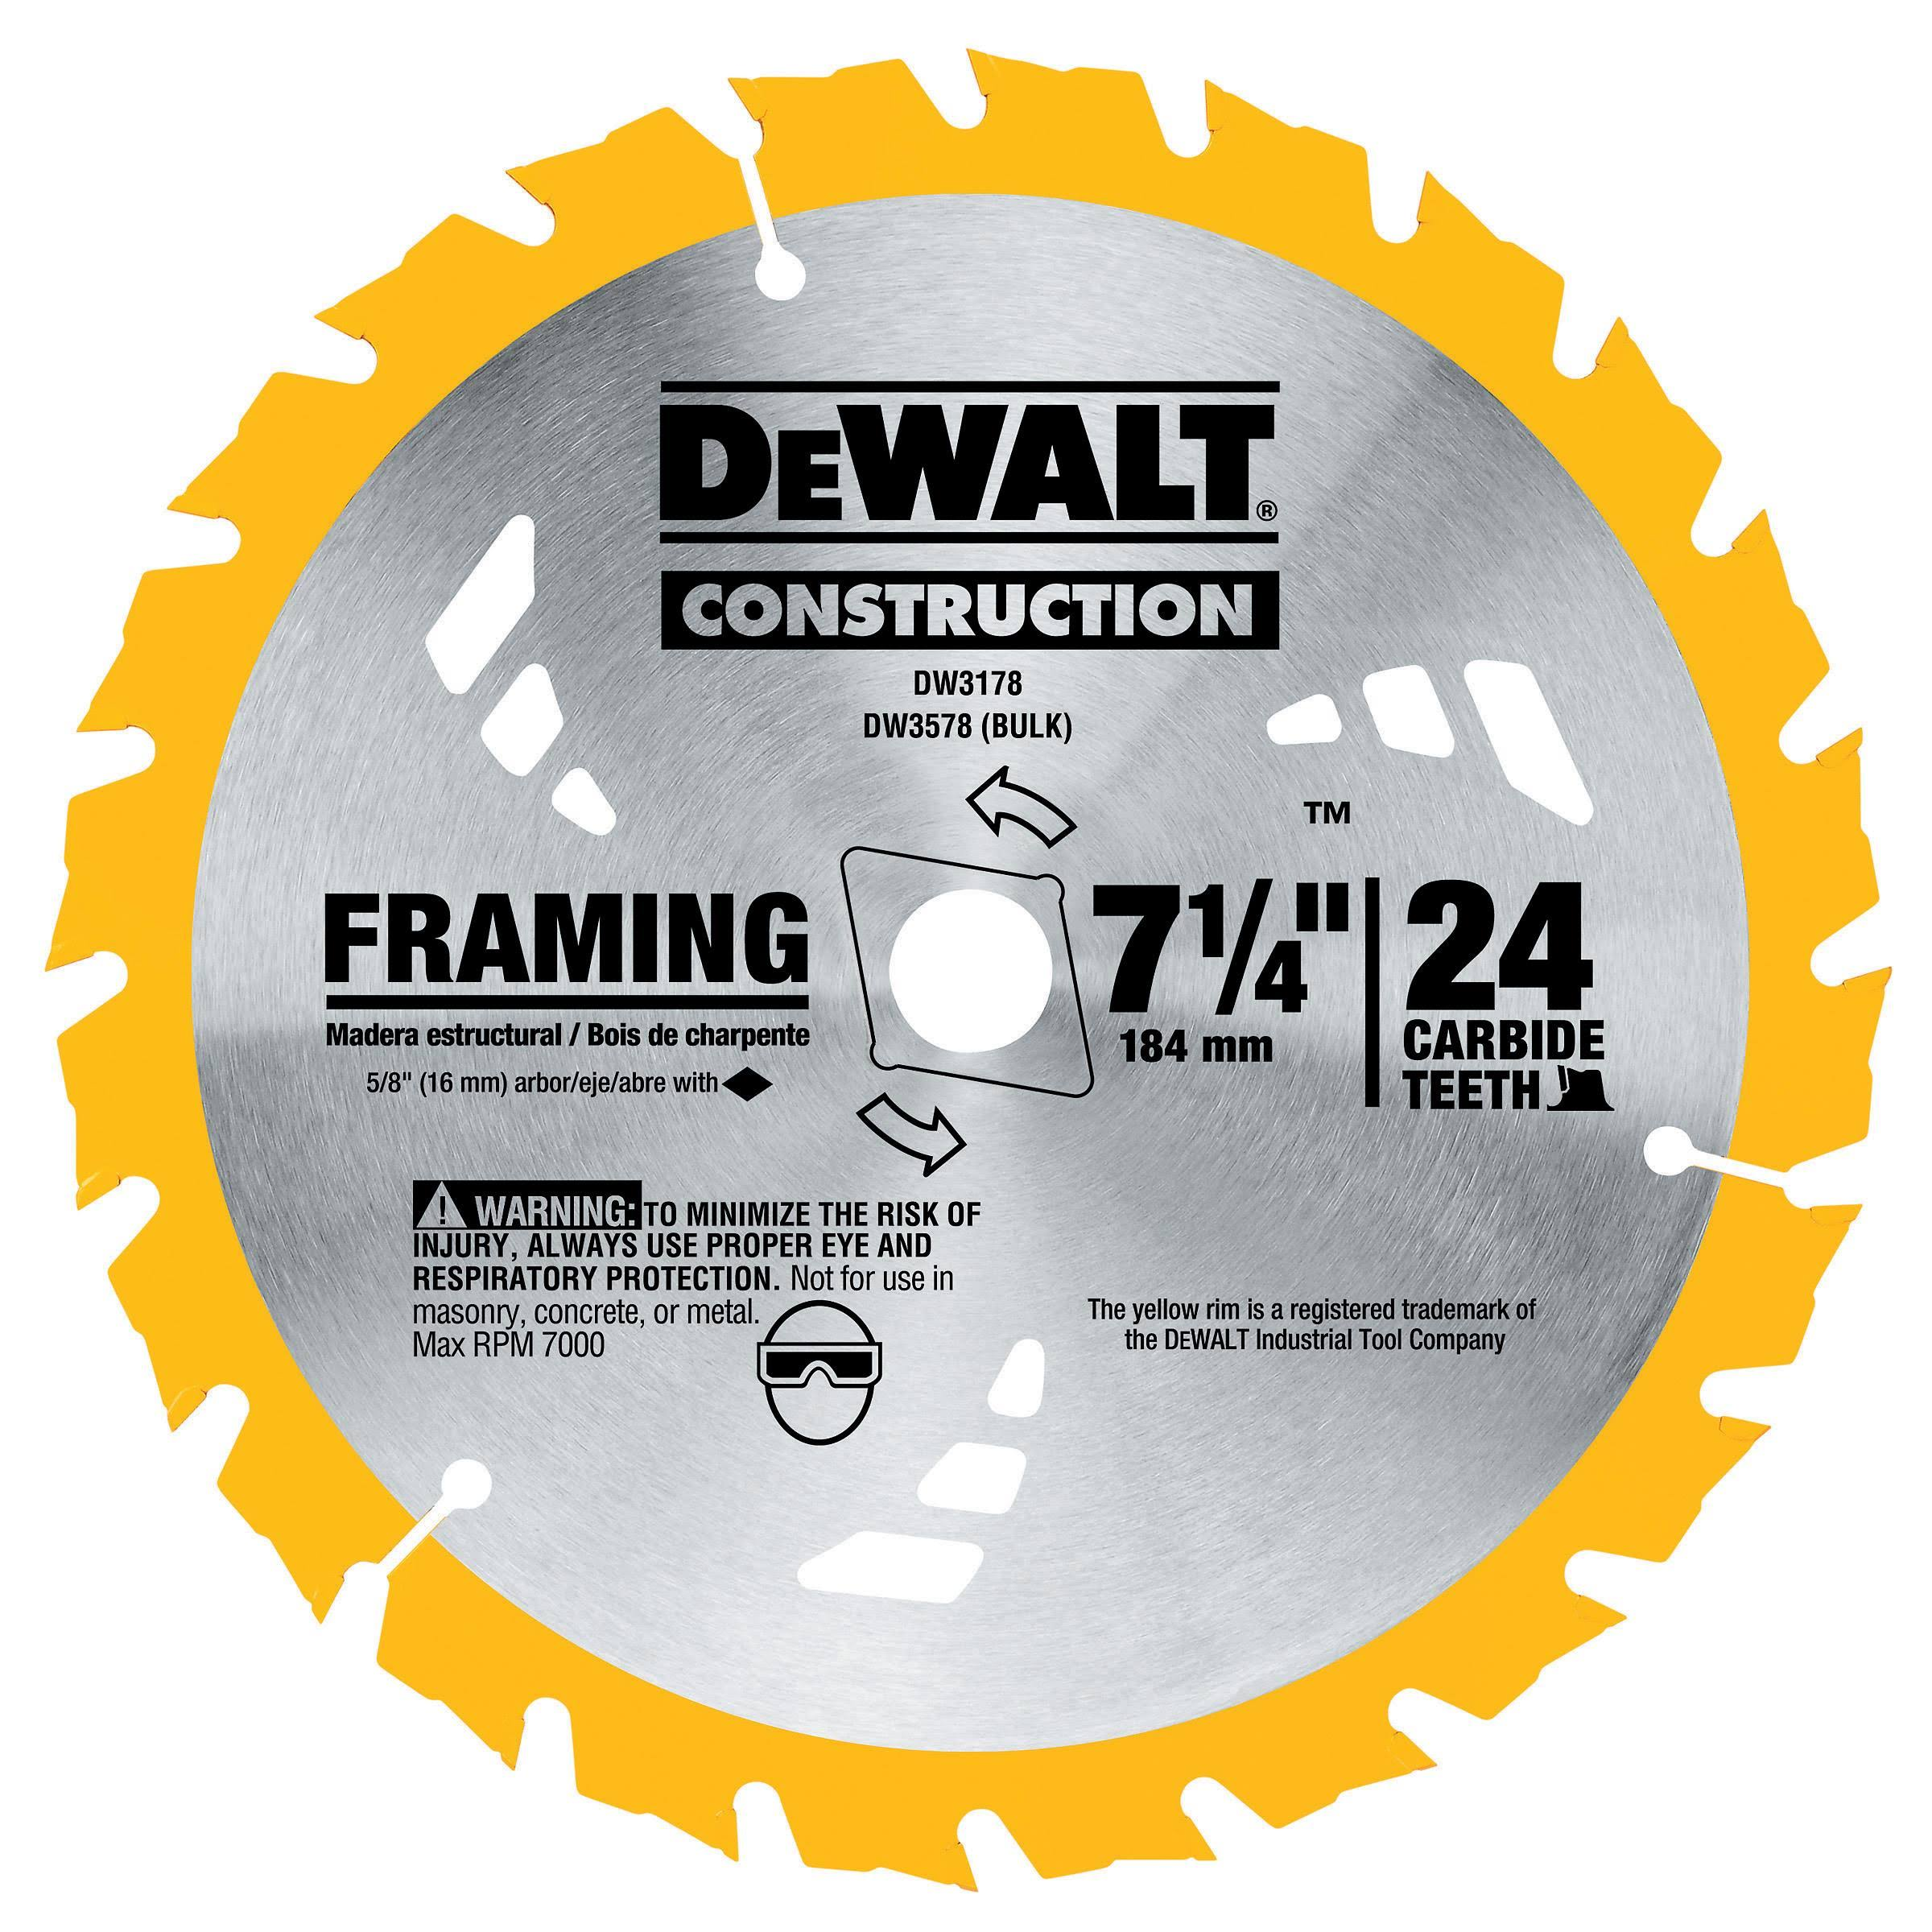 Dewalt Framing Circular Saw Blade - 24 Tooth